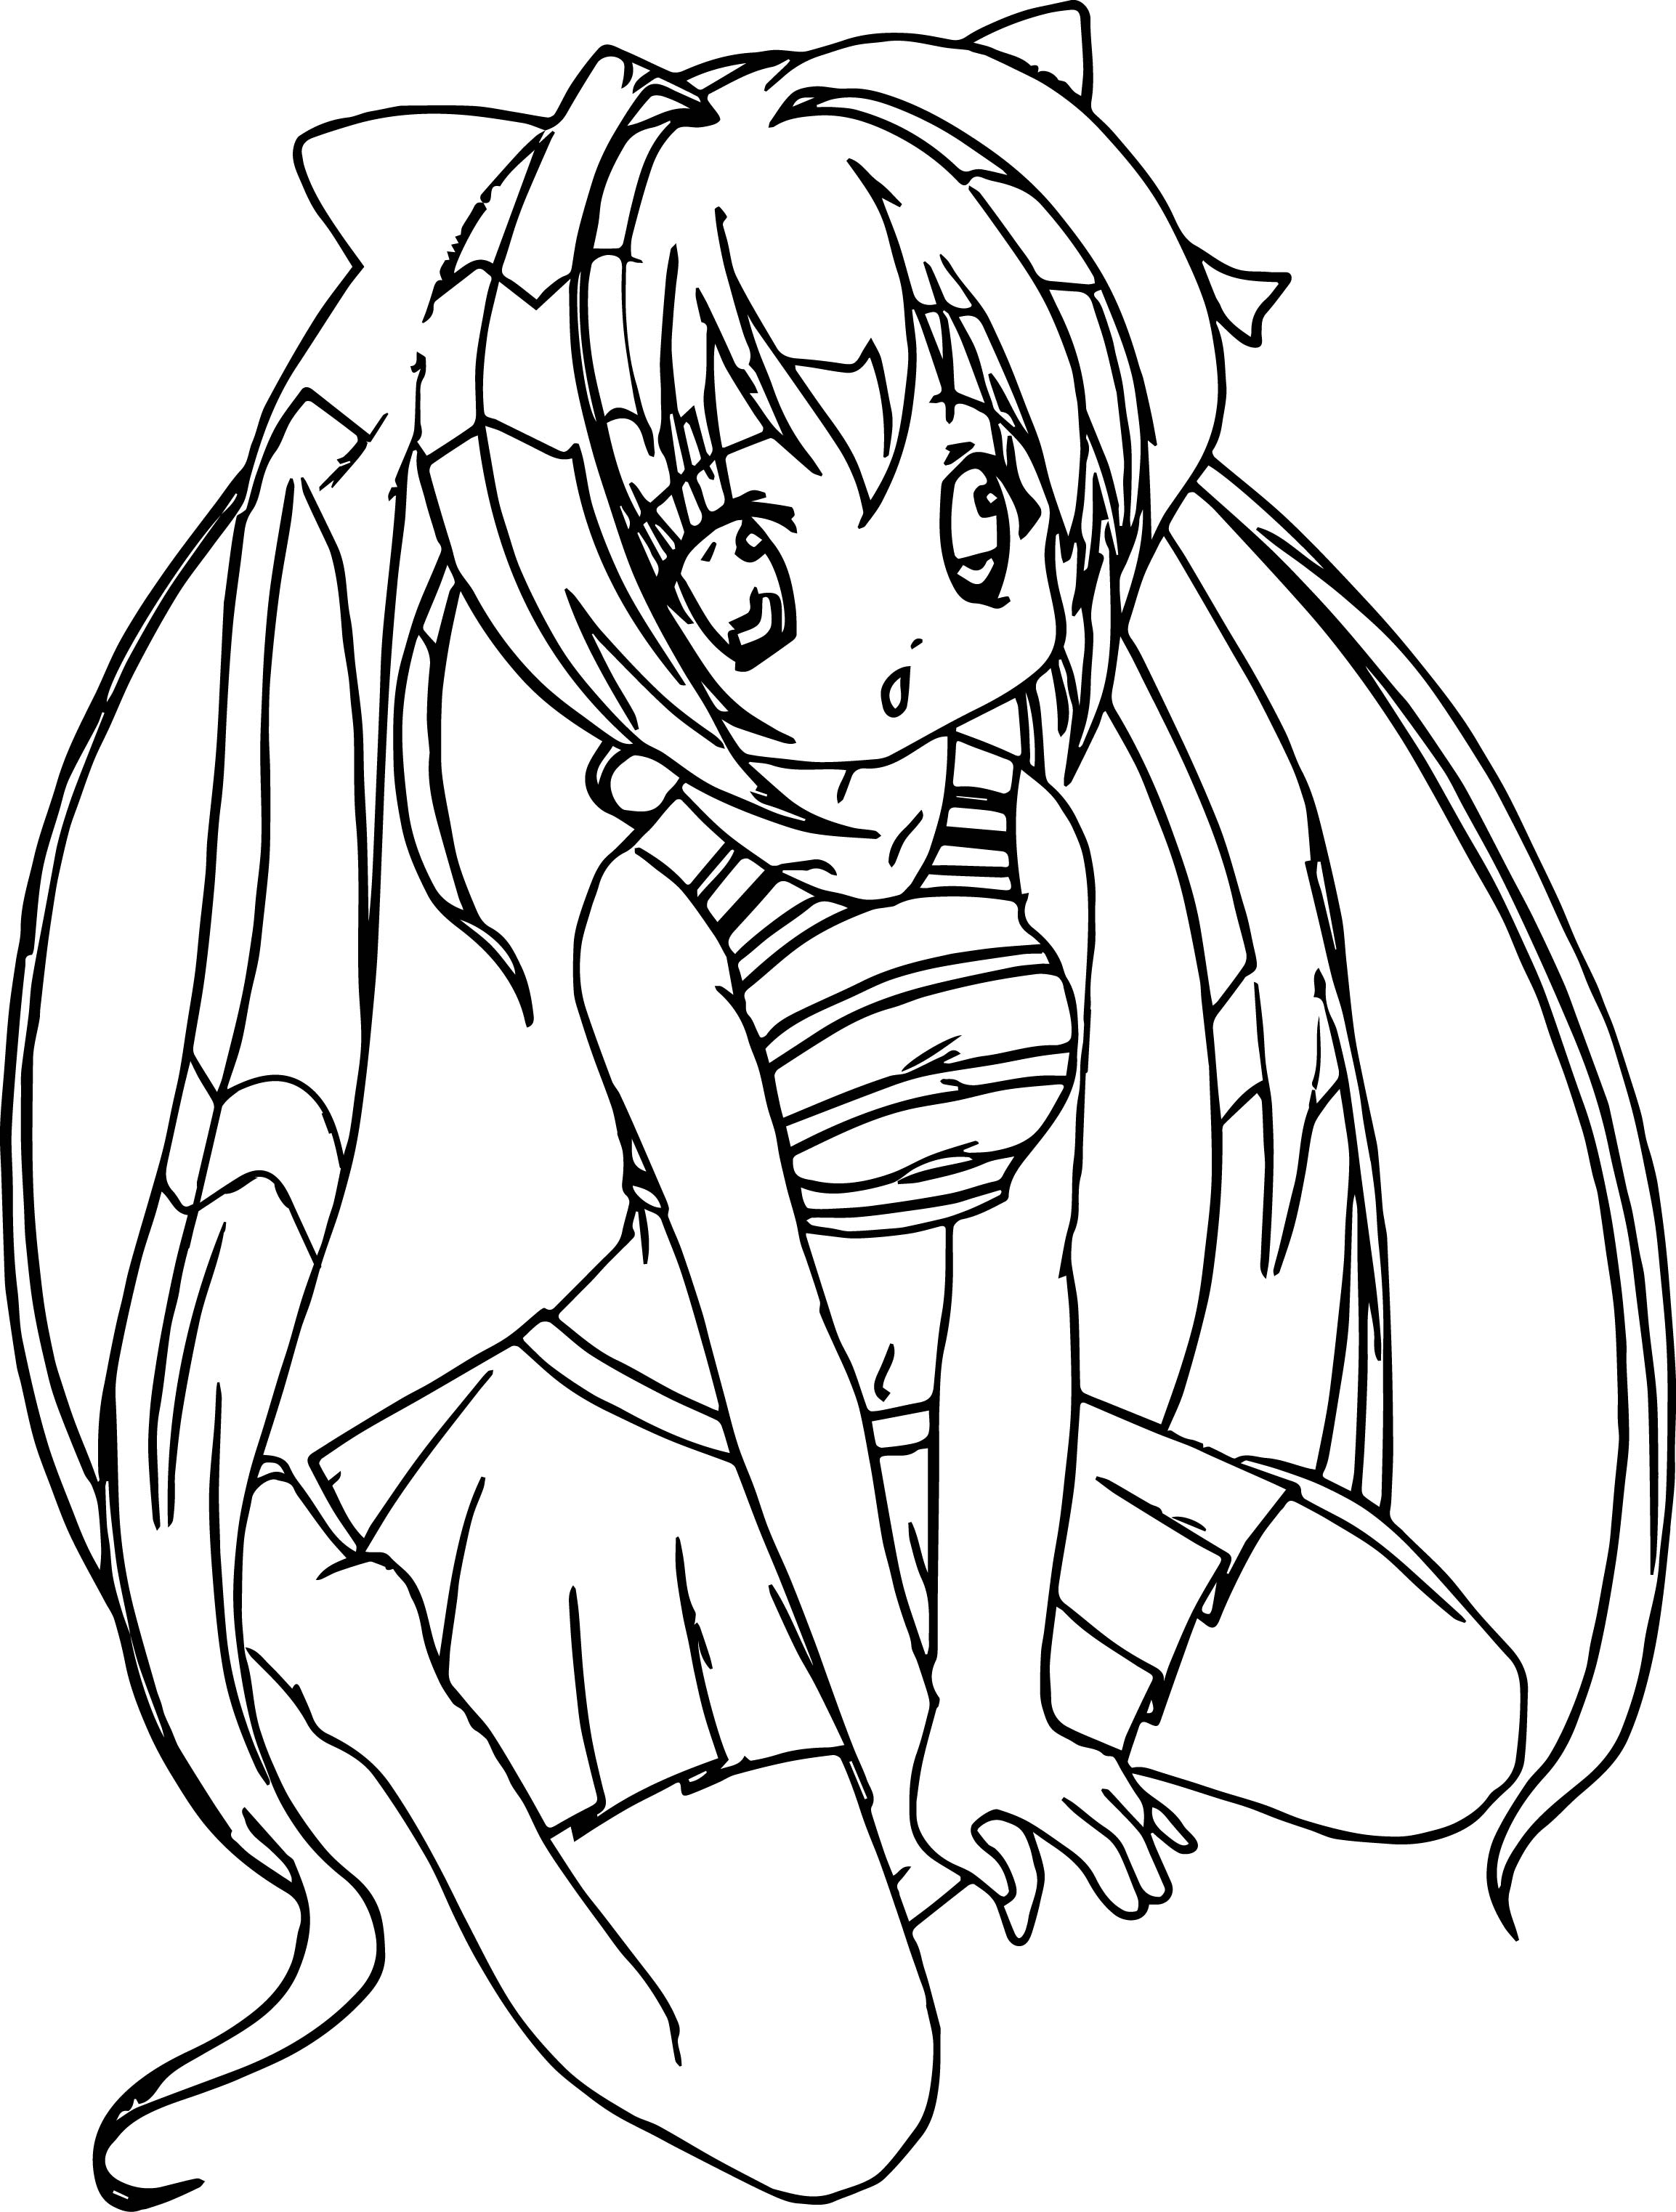 Anime Girl Student Coloring Page Wecoloringpage